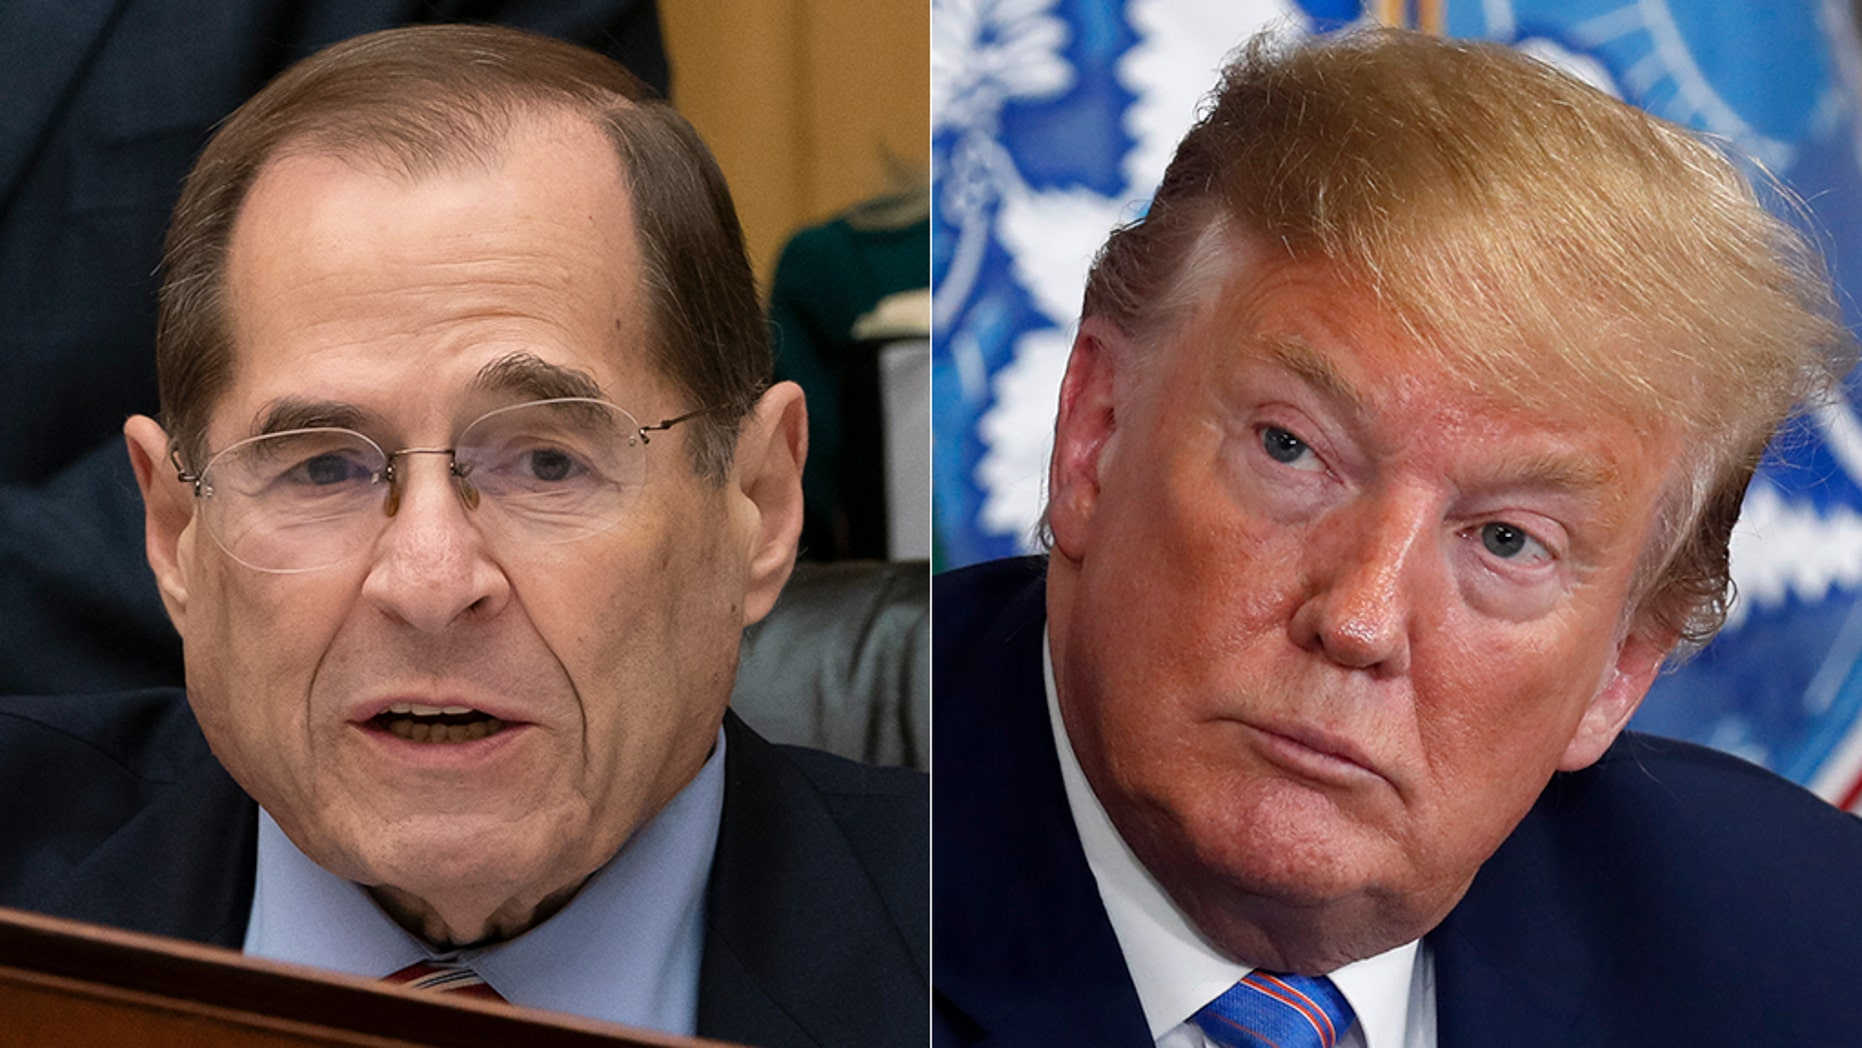 Westlake Legal Group Jerry-Nadler-Donald-Trump-AP Jerry Nadler blasts 'lawless' Trump administration for defying subpoenas Liam Quinn fox-news/politics/executive/white-house fox-news/person/donald-trump fox-news/entertainment/media fox news fnc/politics fnc article 4e00d138-d614-503f-a03a-4a0adbad6d0a